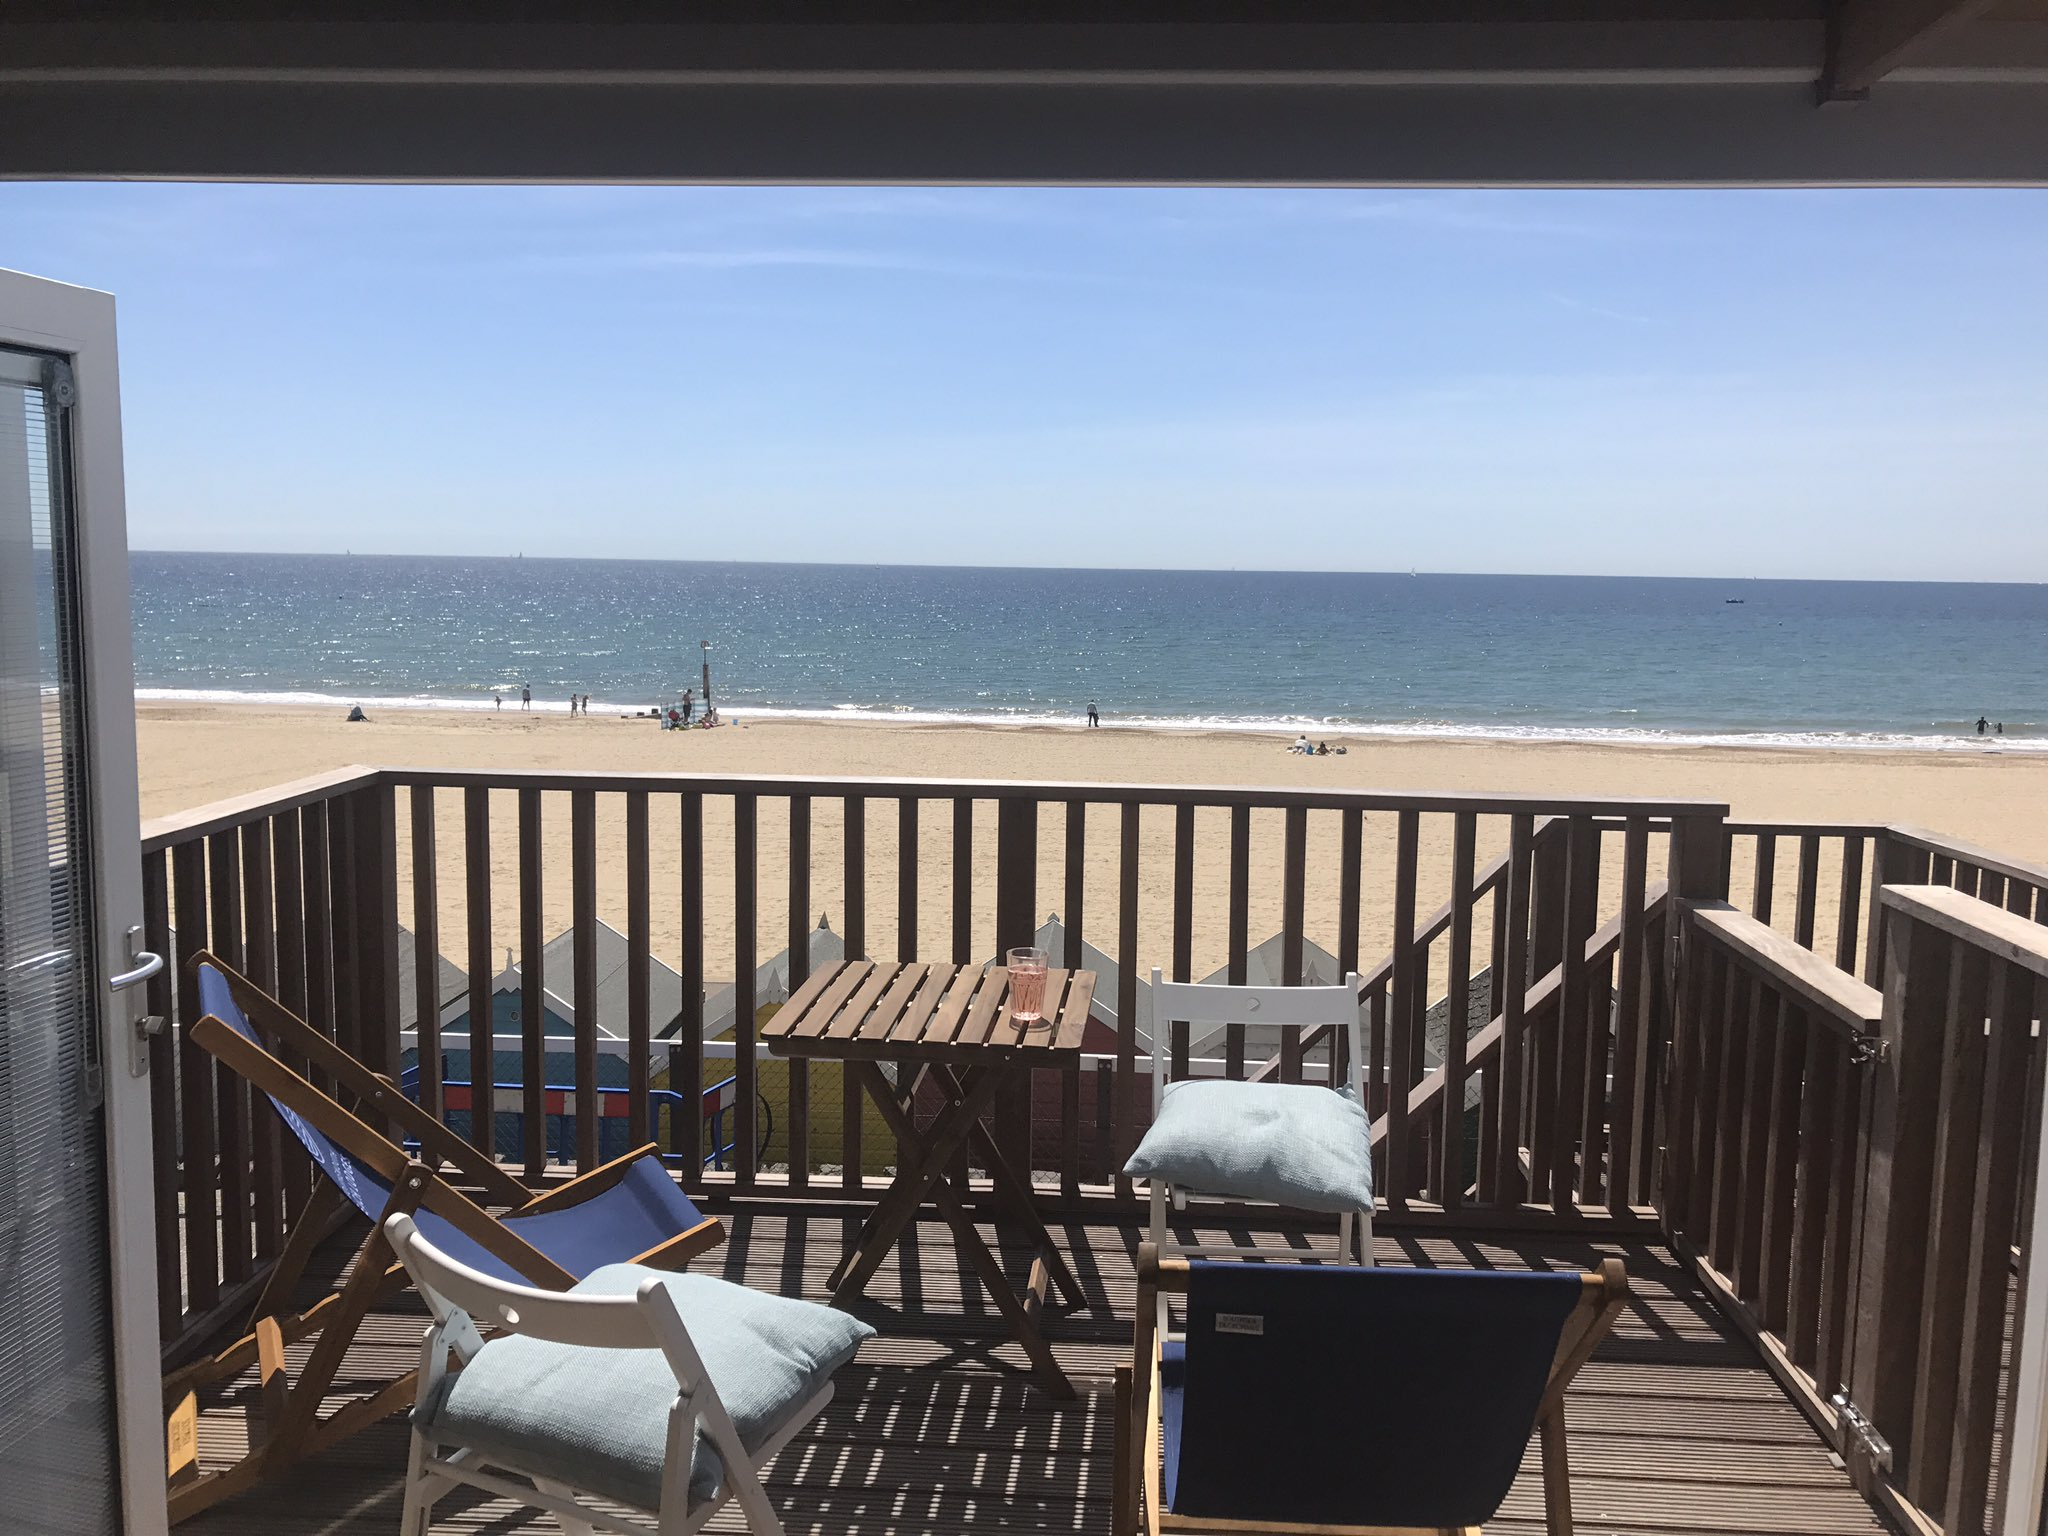 @bmthbeachlodges #roomwithaview #Bournemouth #bournemouthbeach @soberfishie #sea #beach #sun #summer #perfection https://t.co/VUZrdpHTCw